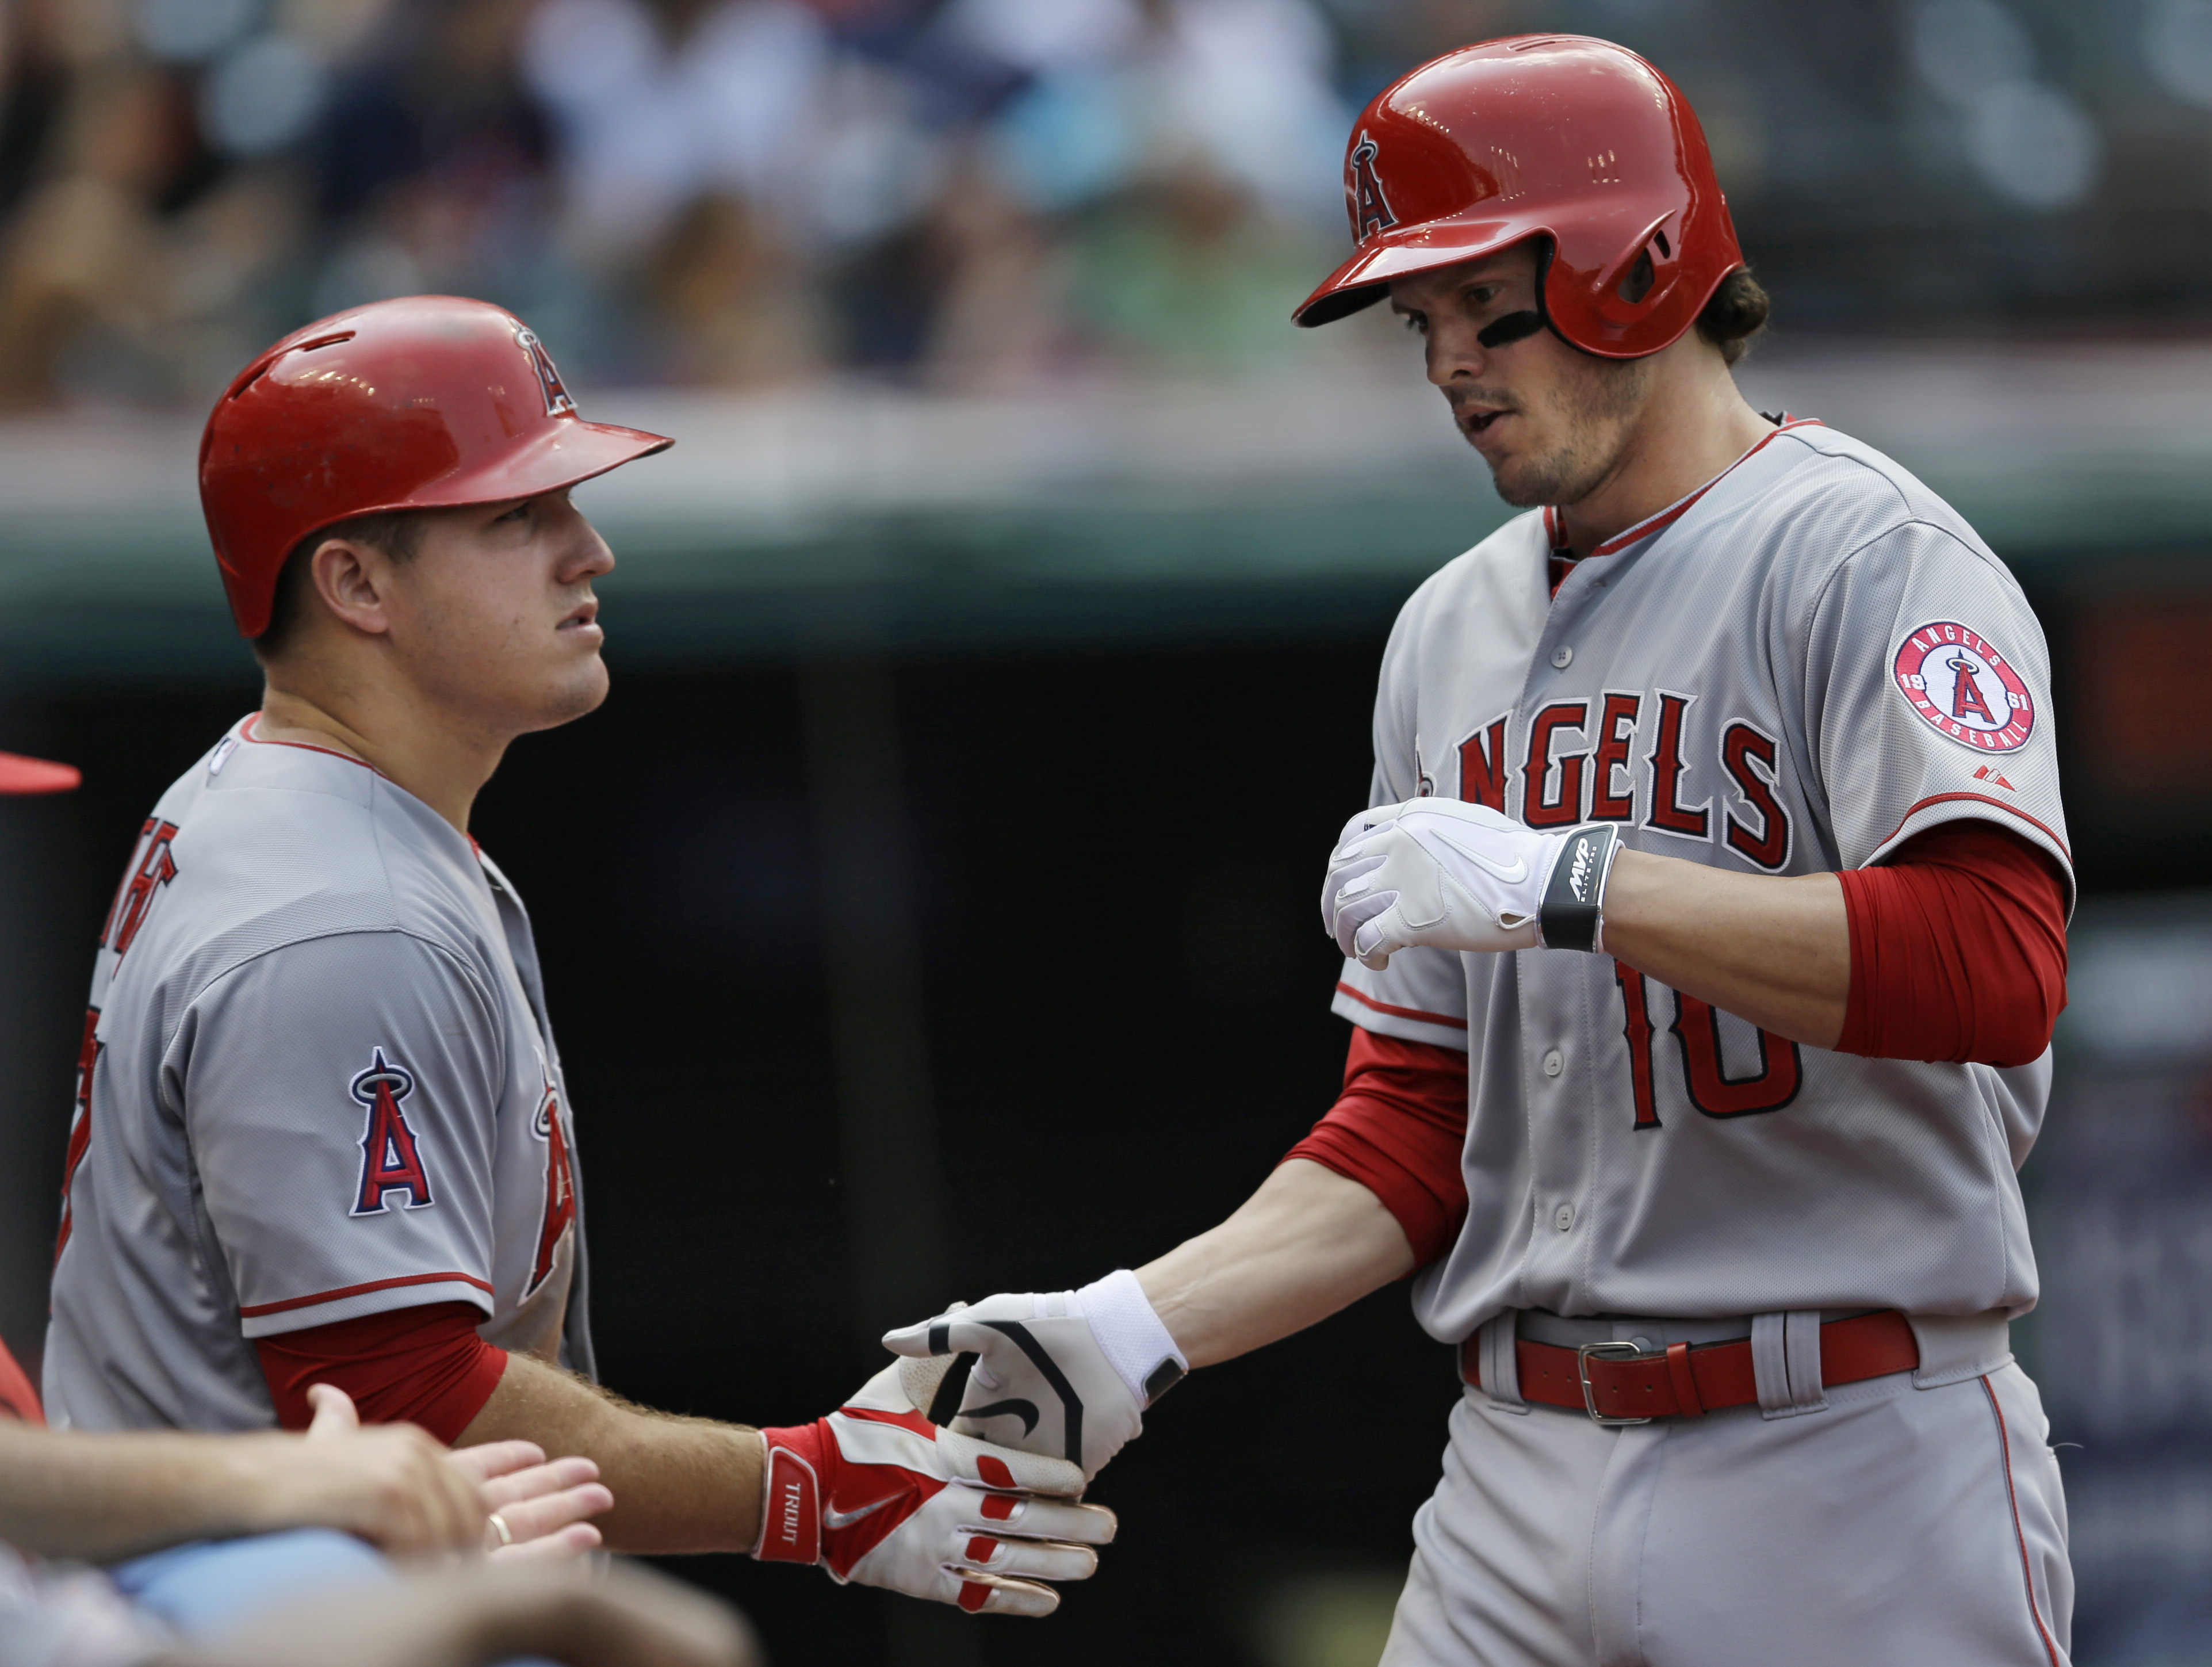 Los Angeles Angels' Grant Green, right, is congratulated by Mike Trout after hitting a solo home run off Cleveland Indians starting pitcher Josh Tomlin in the sixth inning of a baseball game, Sunday, Aug. 30, 2015, in Cleveland. (AP Photo/Tony Dejak)